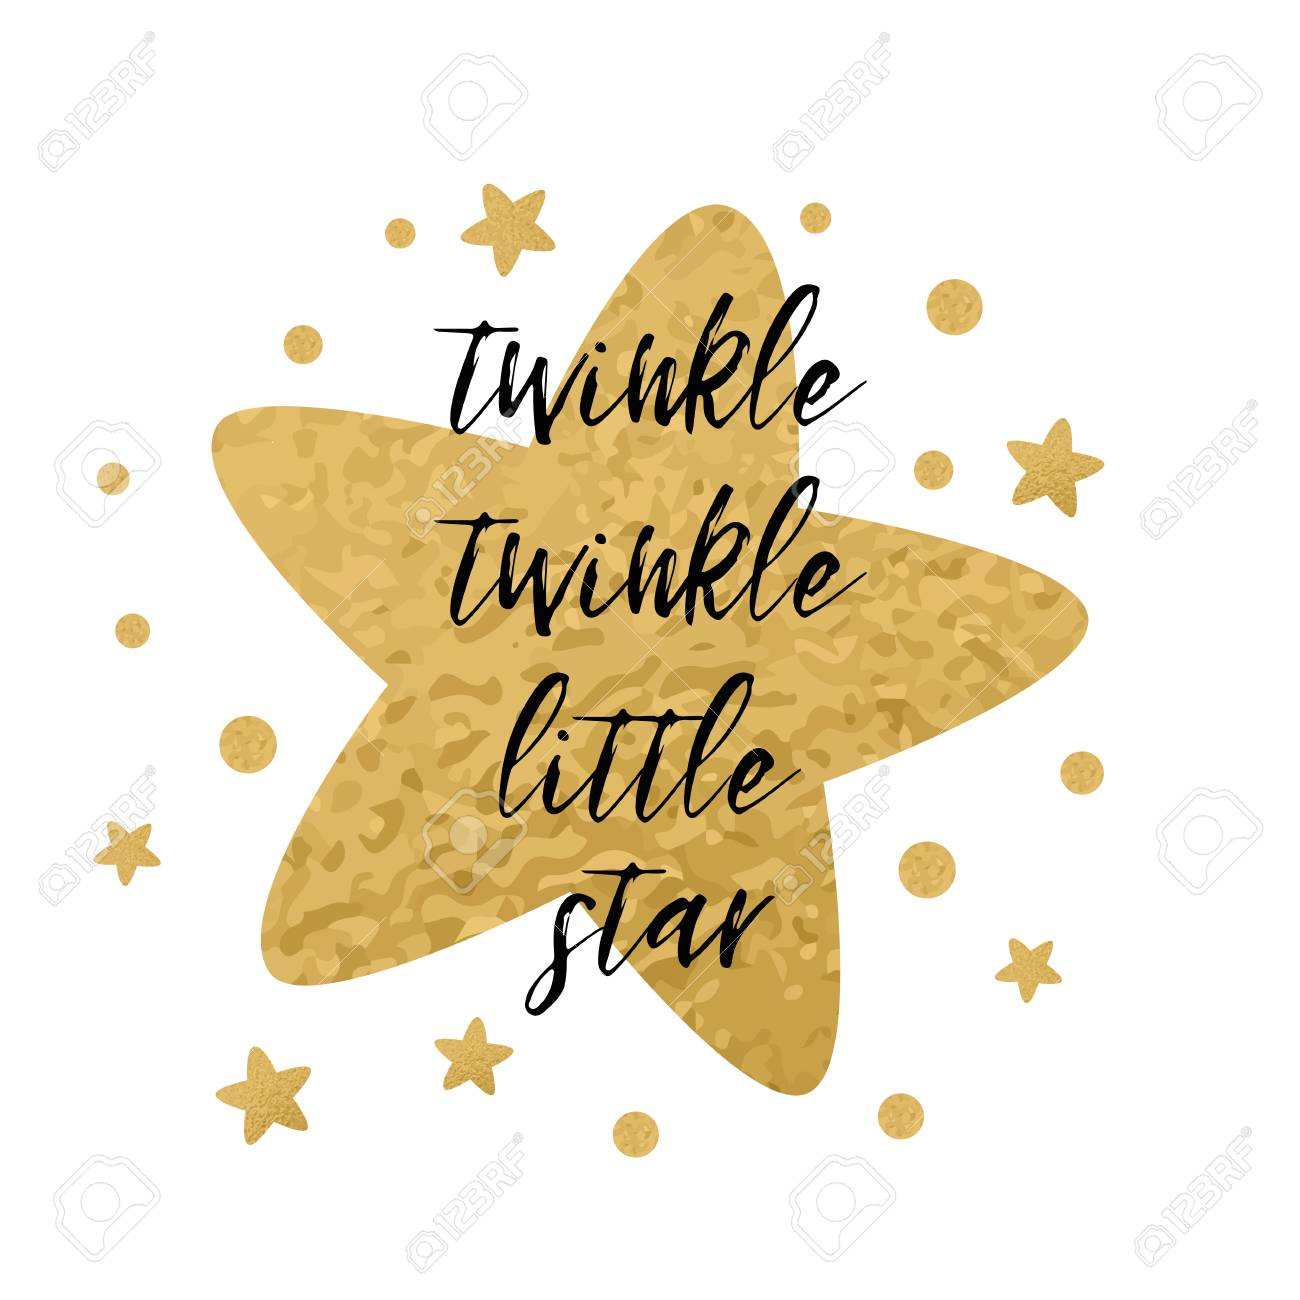 215ff0c6c Twinkle twinkle little star text with cute golden stars for girl baby  shower card template.